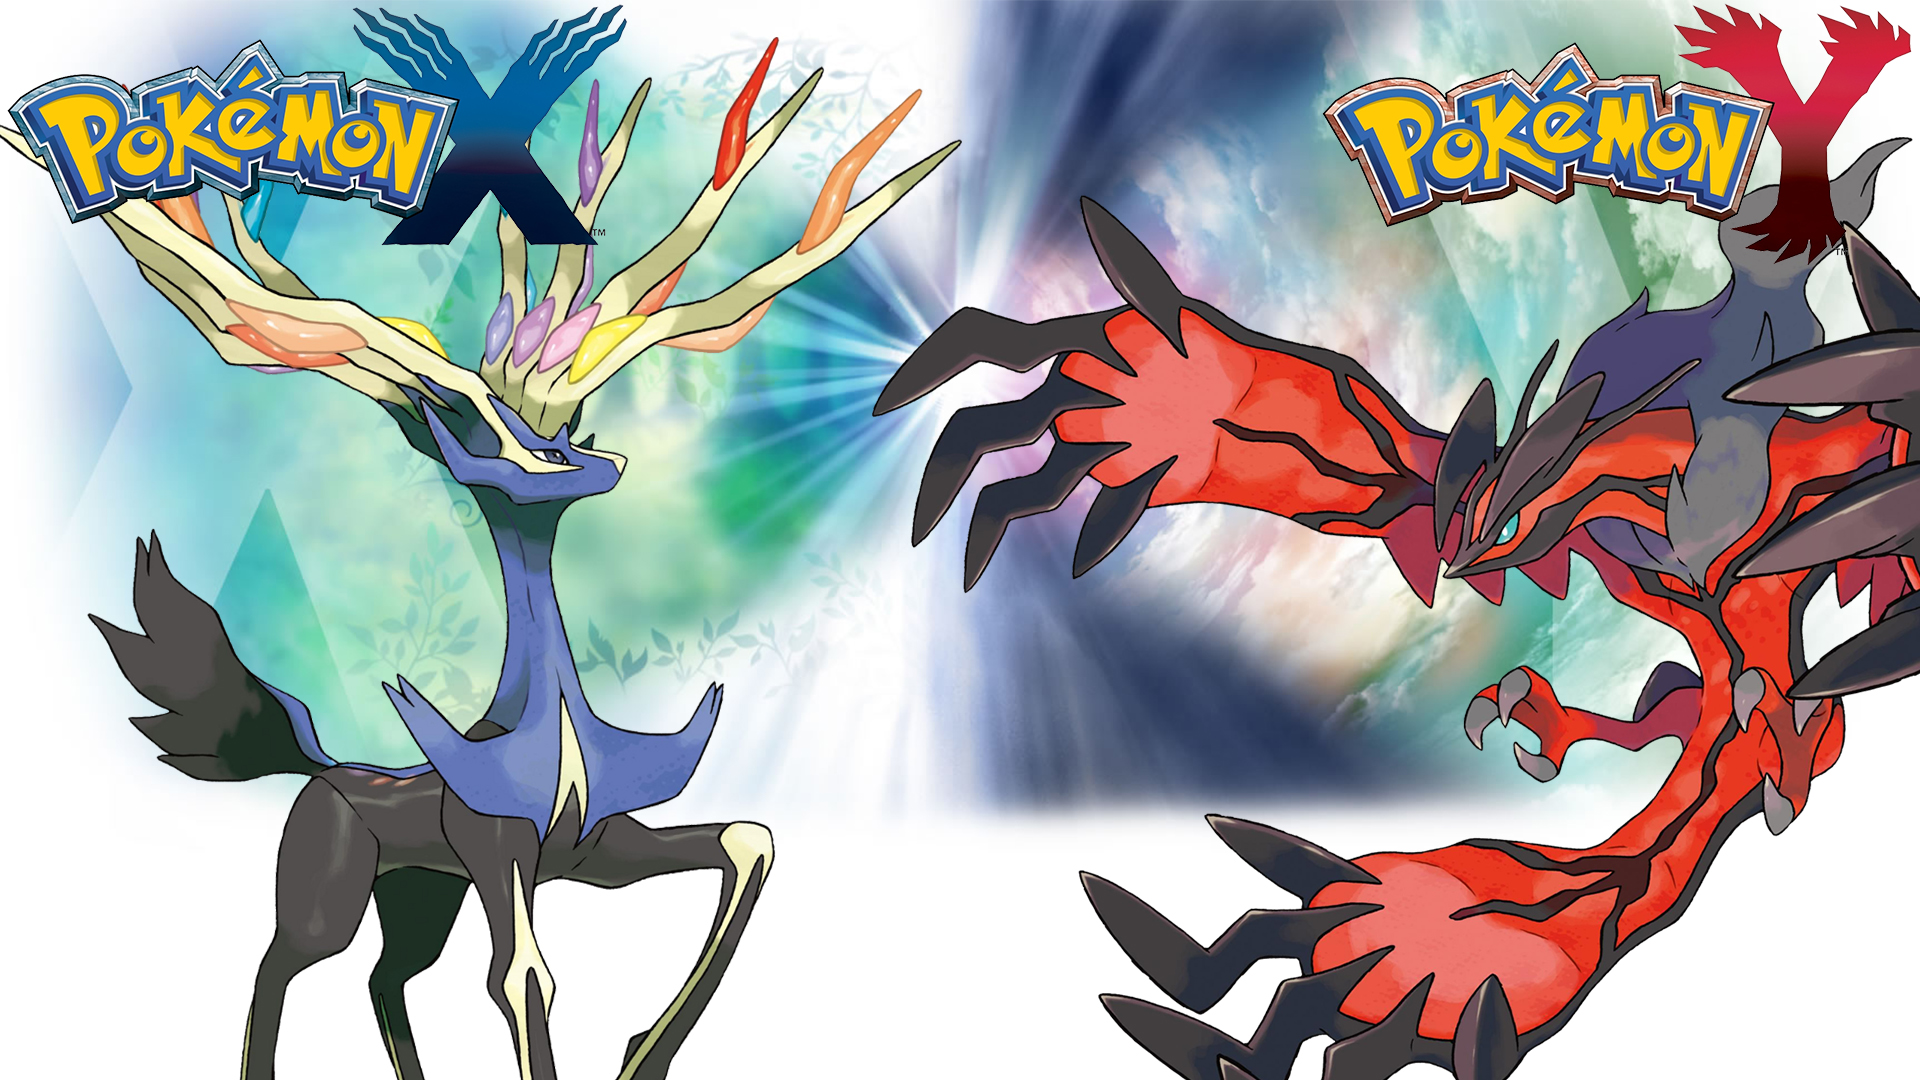 pokemon_x_y___wallpaper___xerneas_and_yveltal_by_thelimomon-d6q5bcs